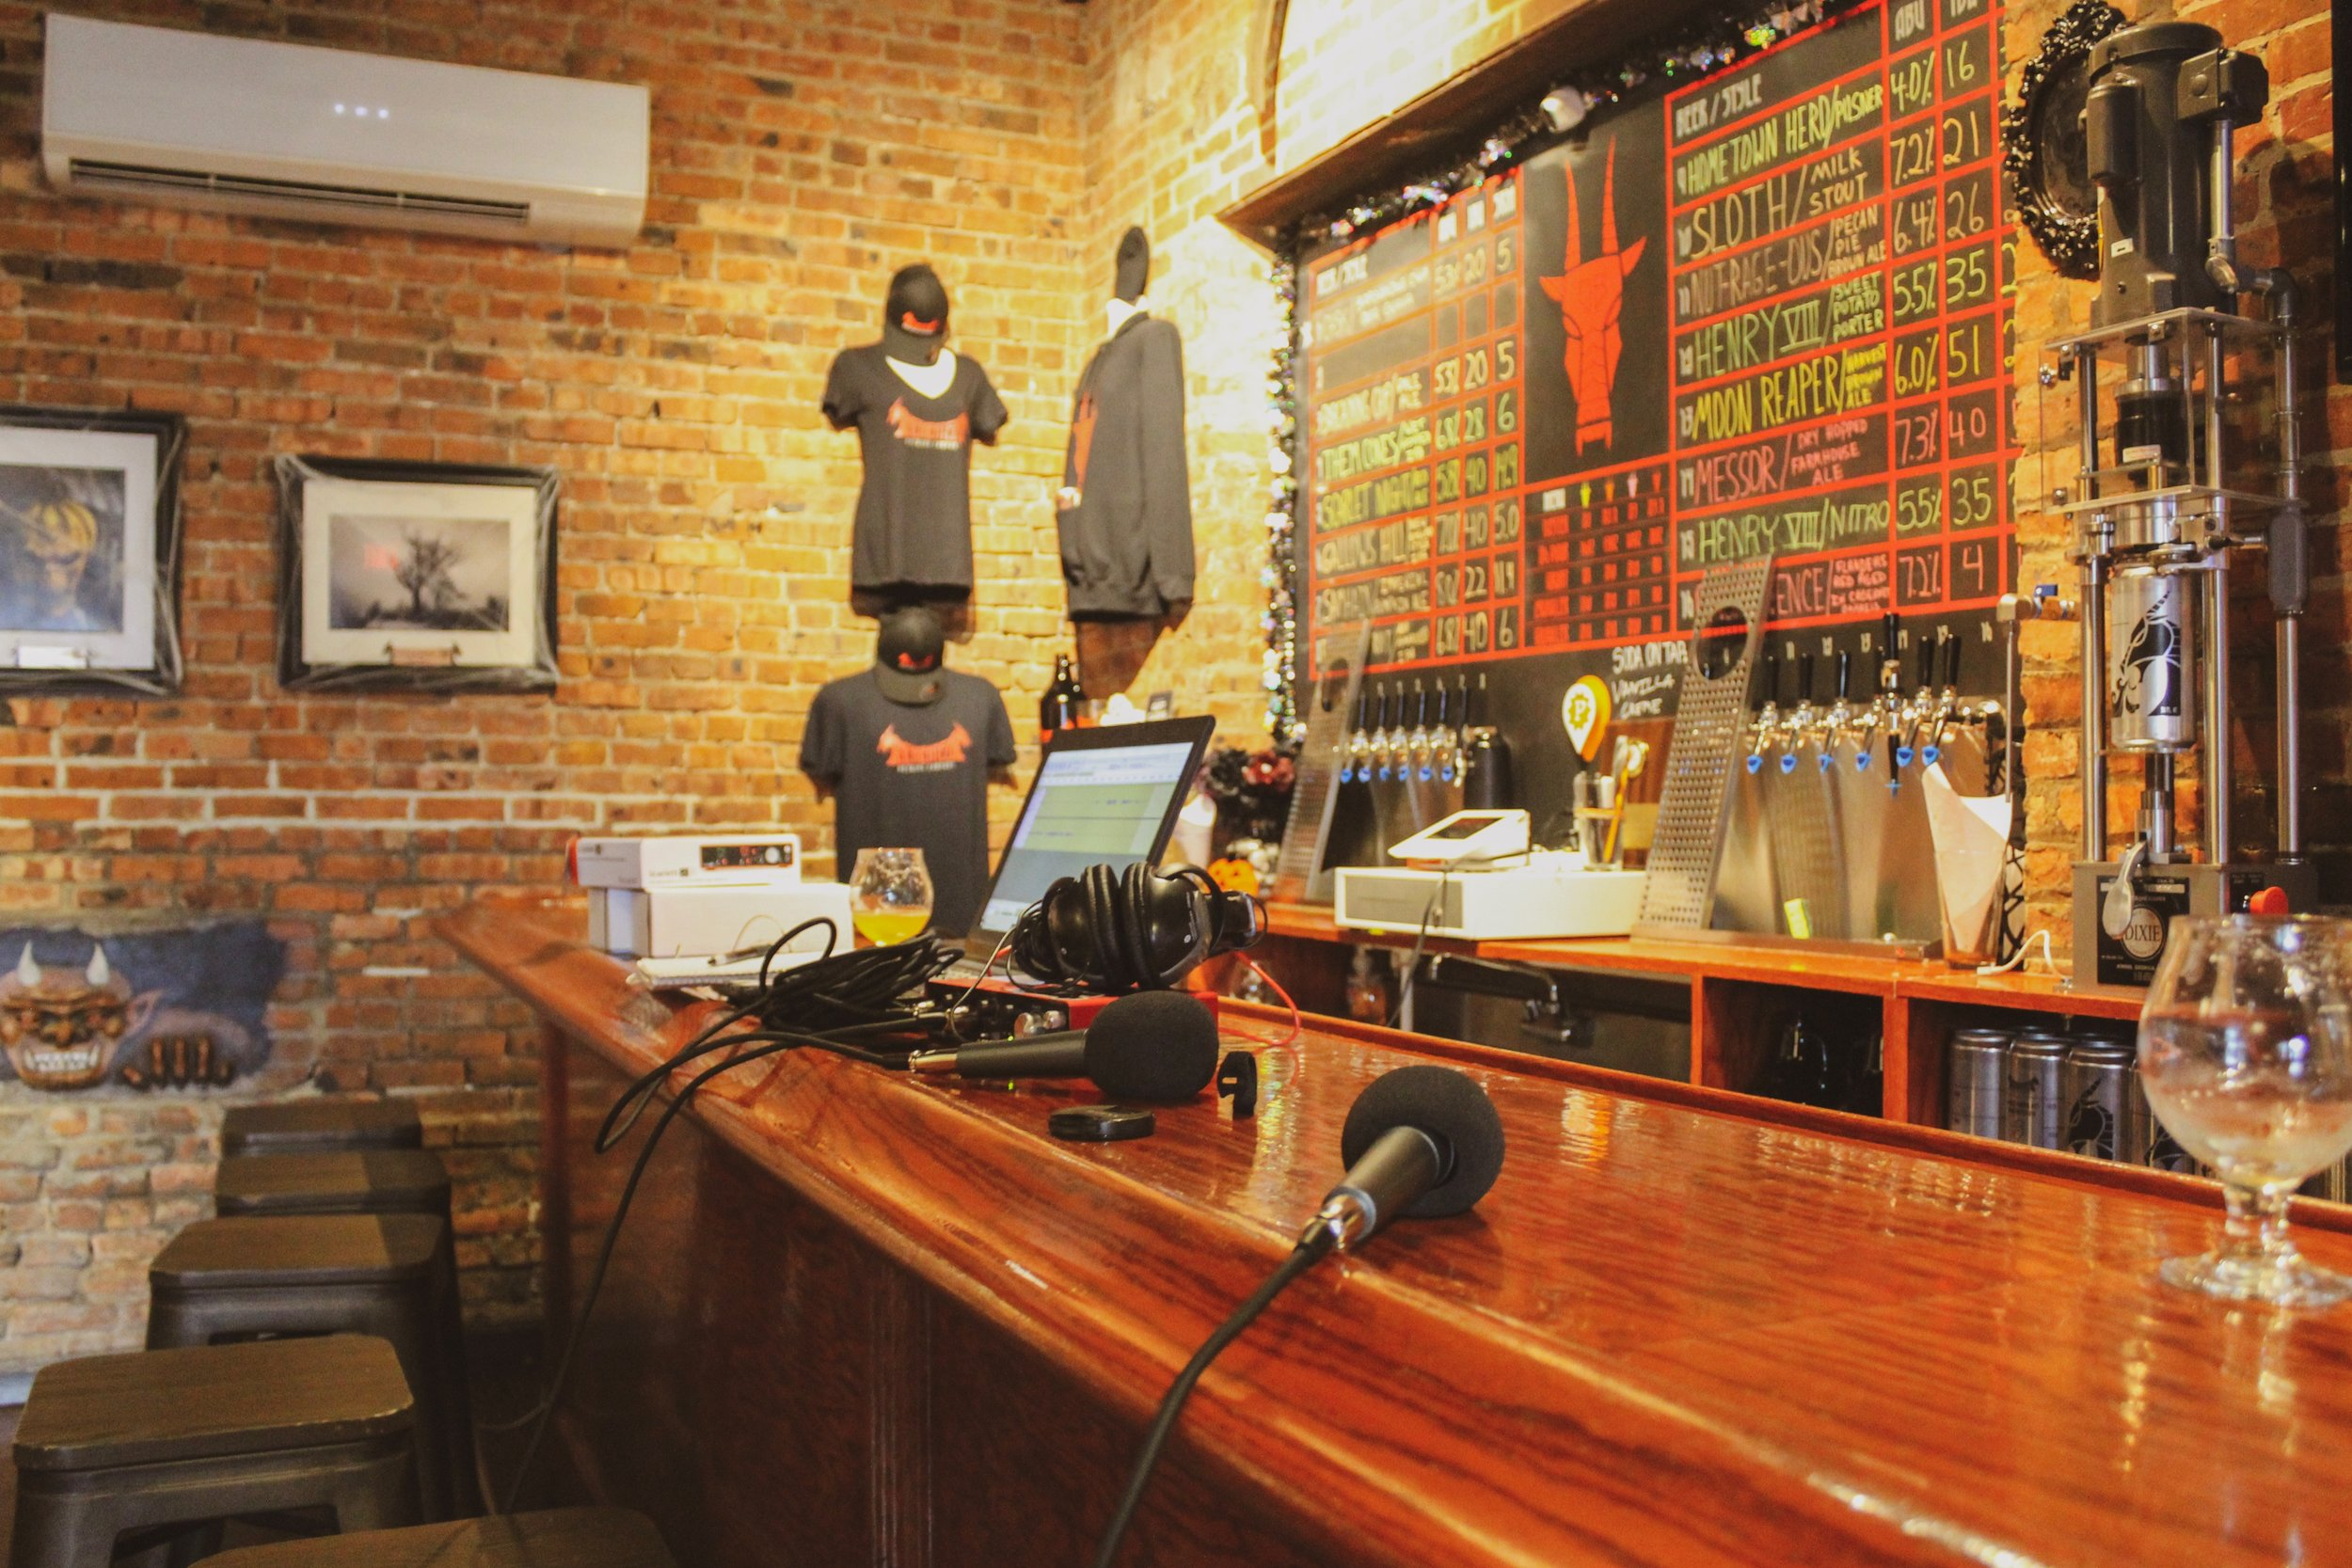 A look at the taproom where we sat down and chatted over a delicious glass of suds!